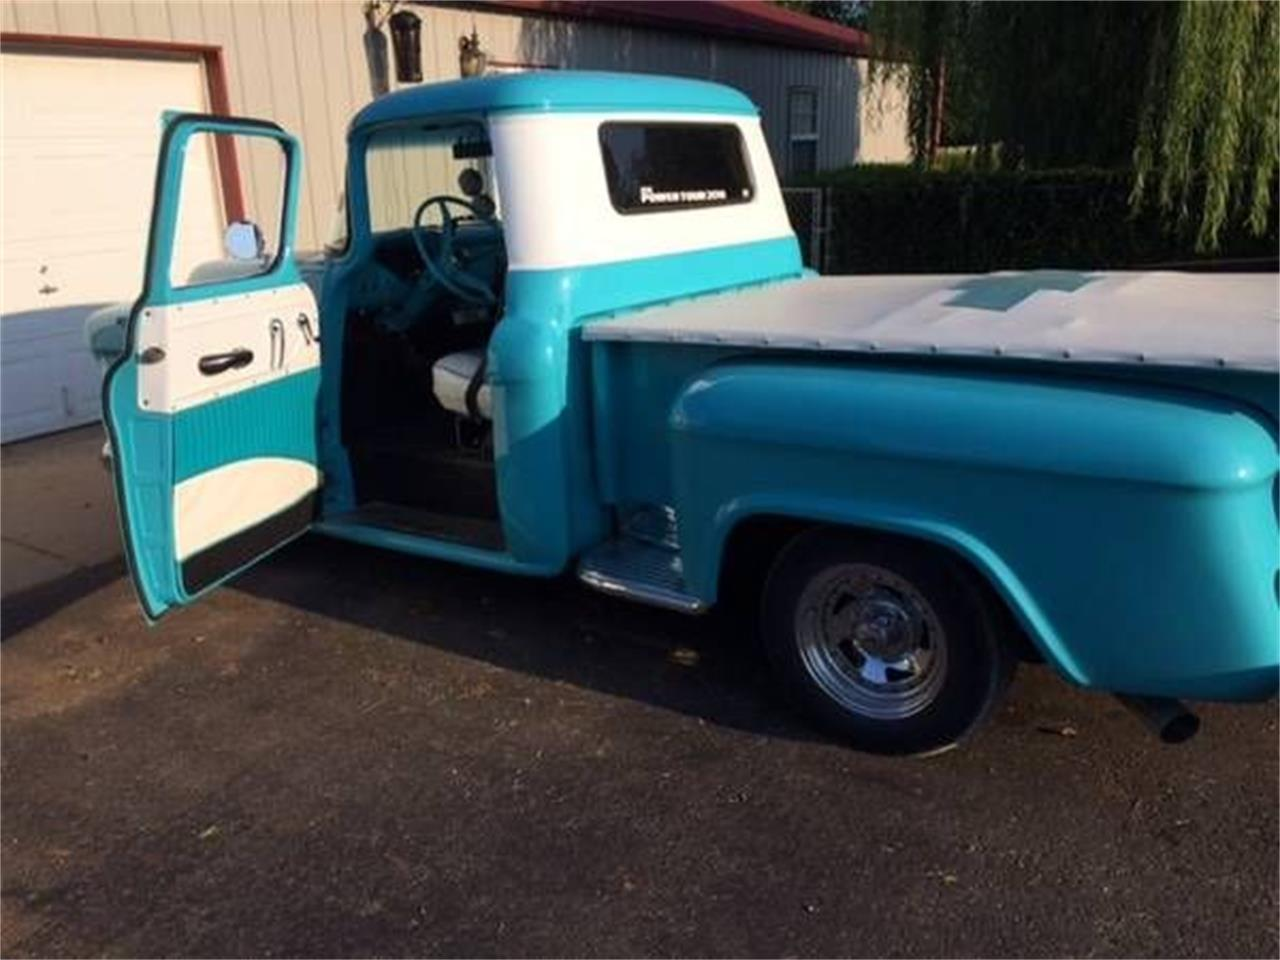 1958 Chevrolet Pickup for sale in Cadillac, MI – photo 11